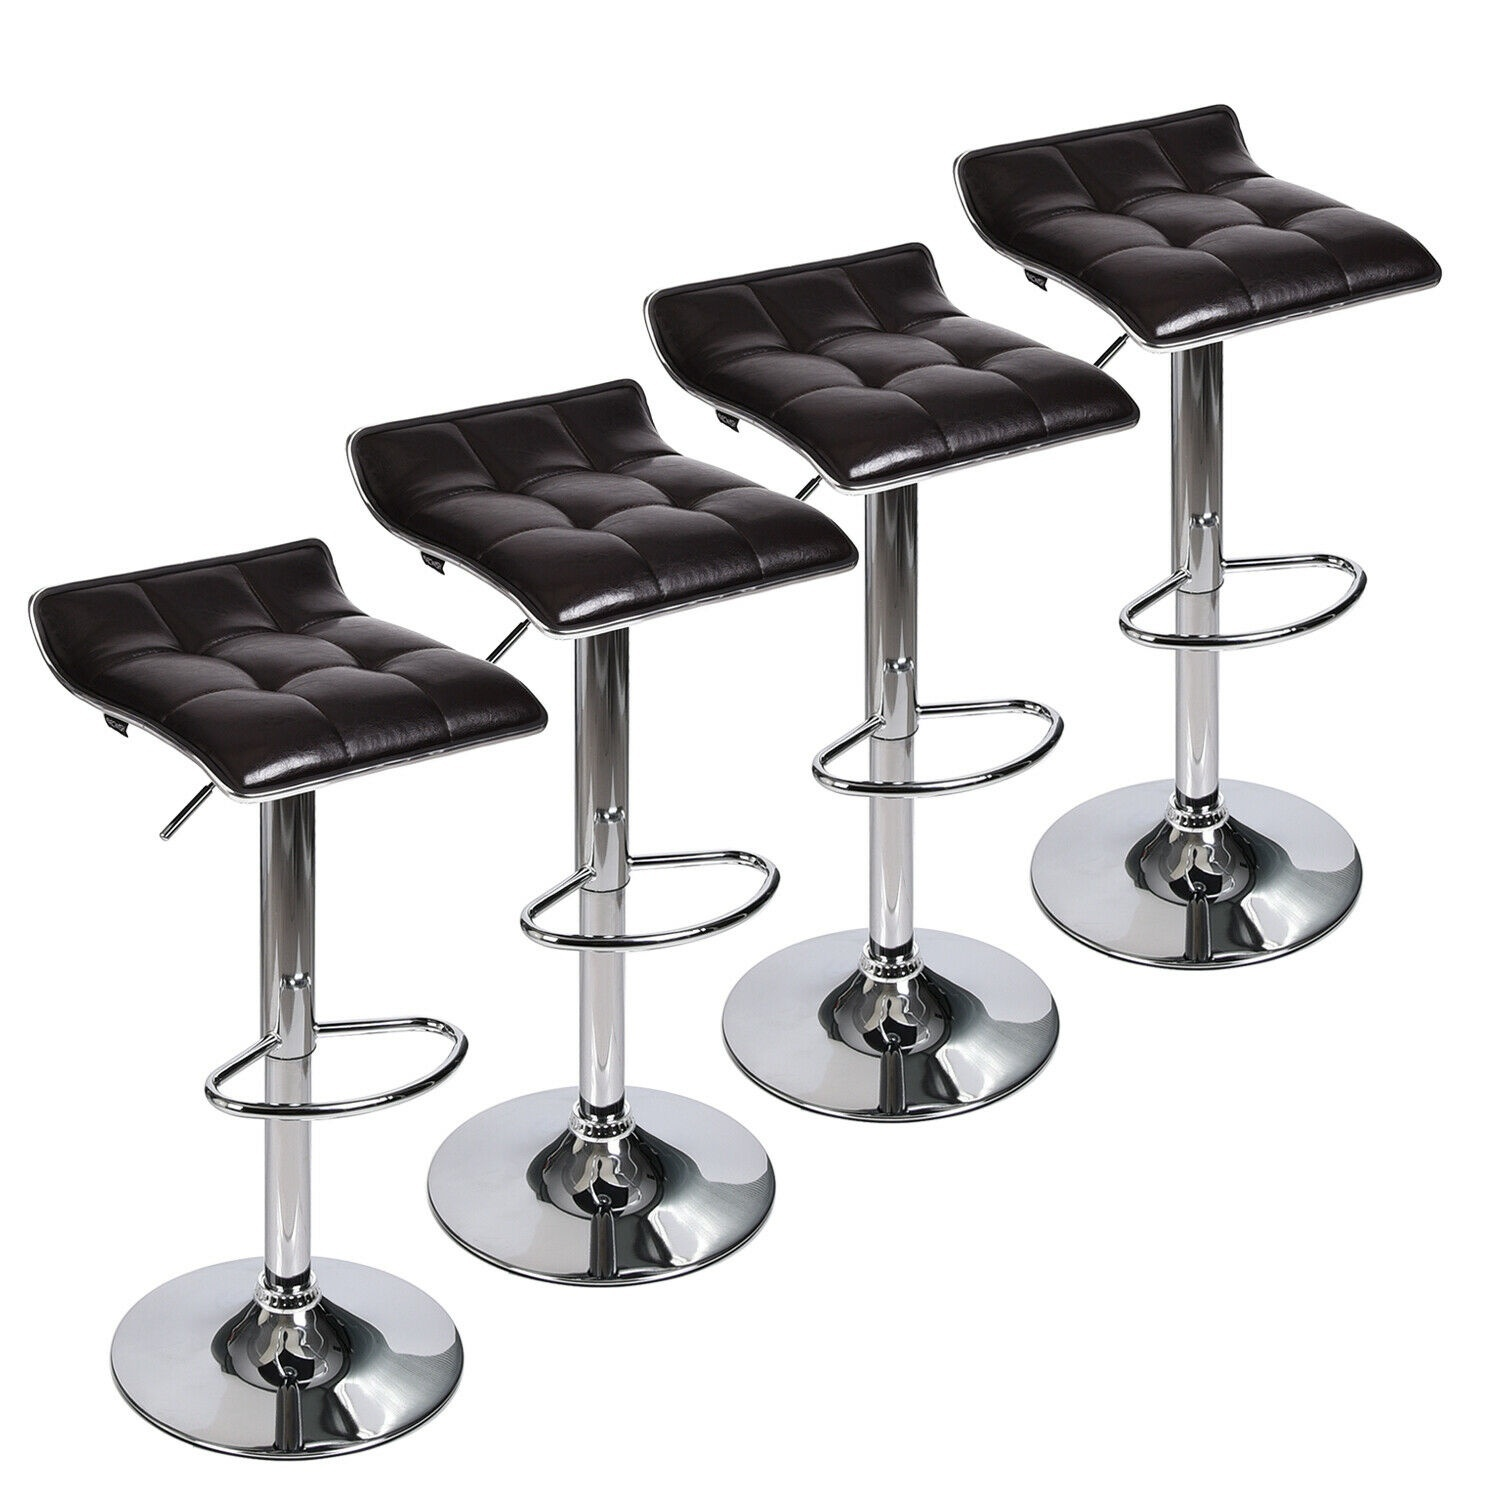 Set Of 4 Bar Chairs PU Leather Swivel Counter Height Pub Dining Chair Kitchen